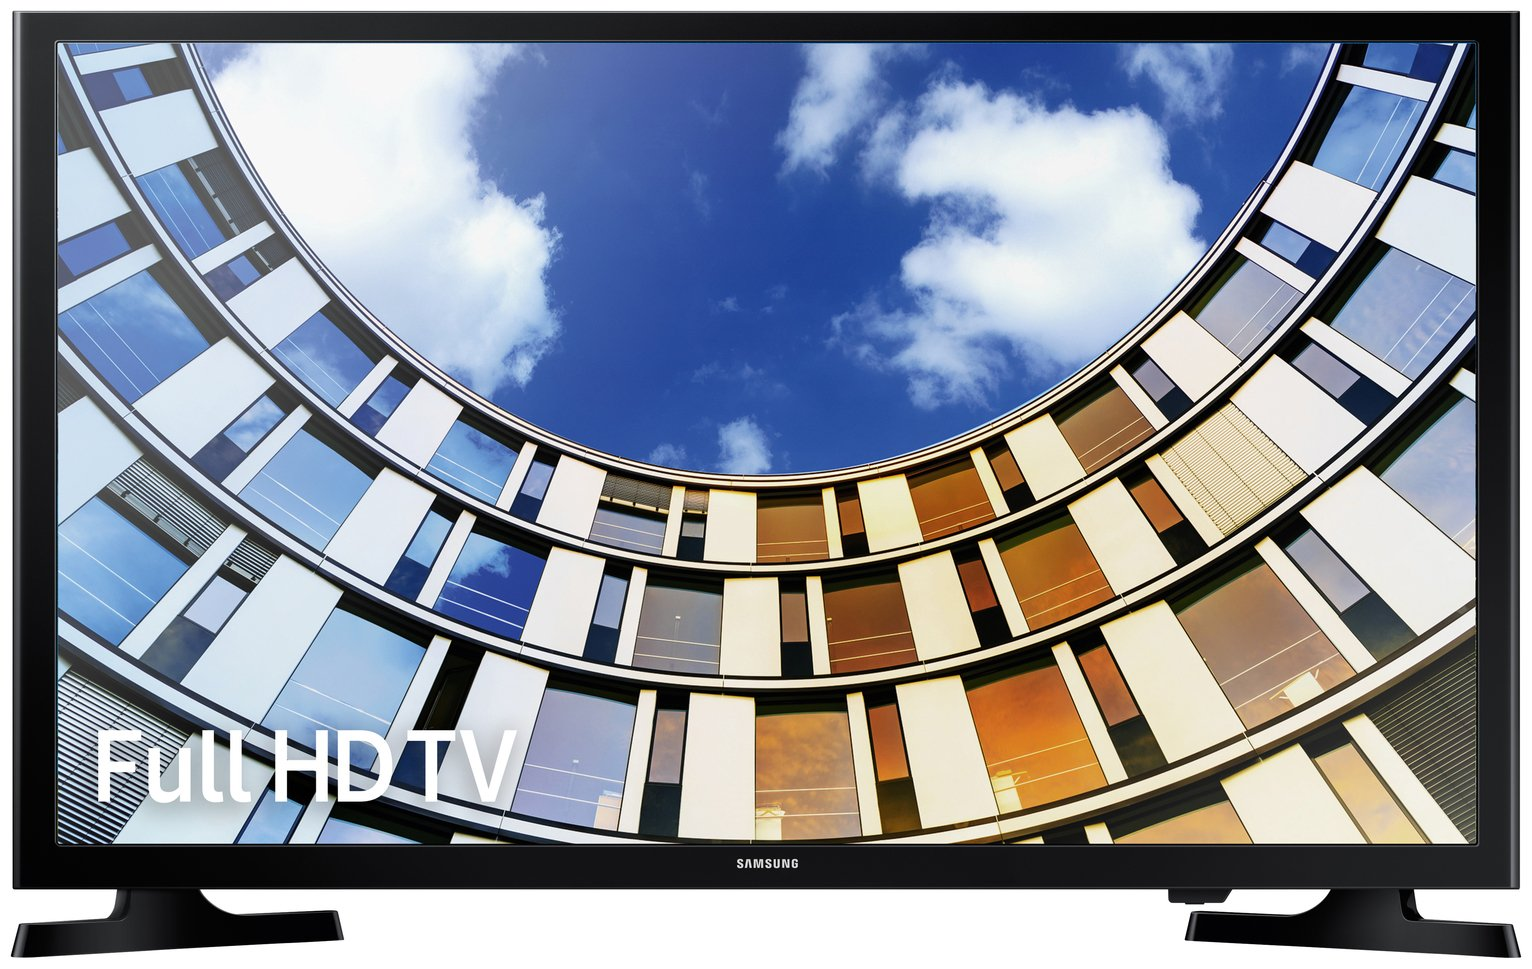 Samsung M5000 40 Inch Full HD TV.